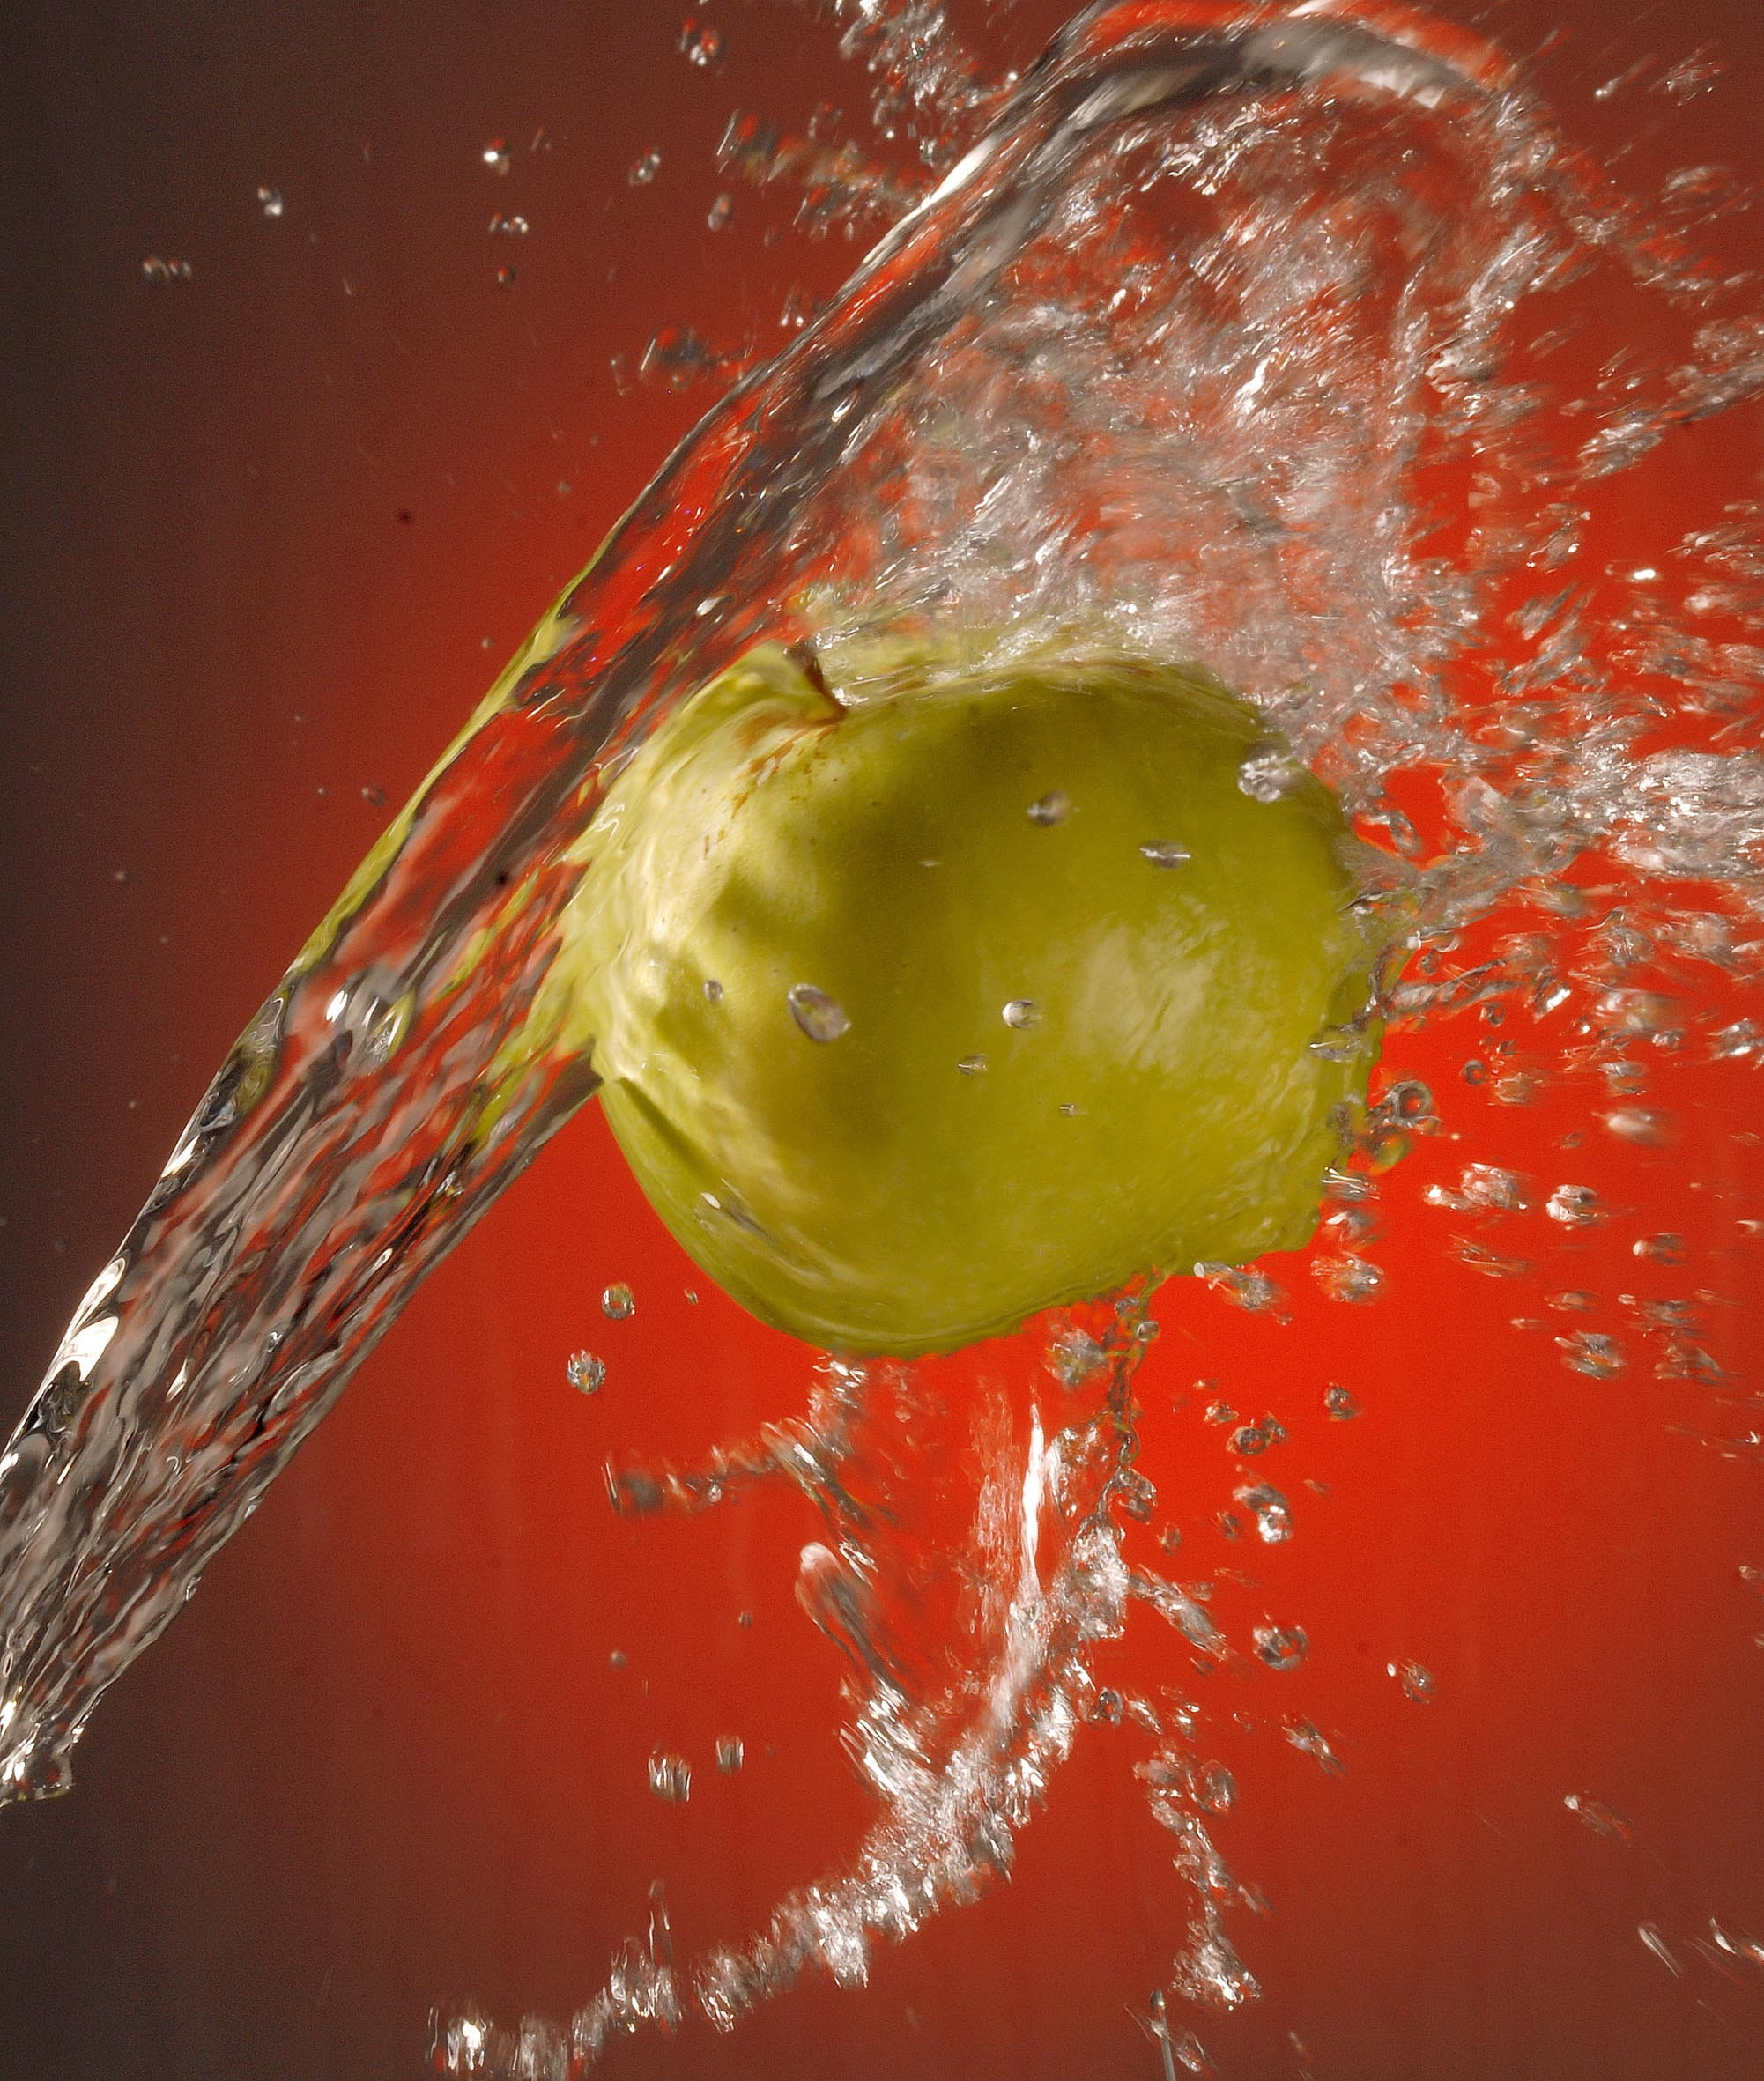 _apple splash_ Mike Wesson.jpg